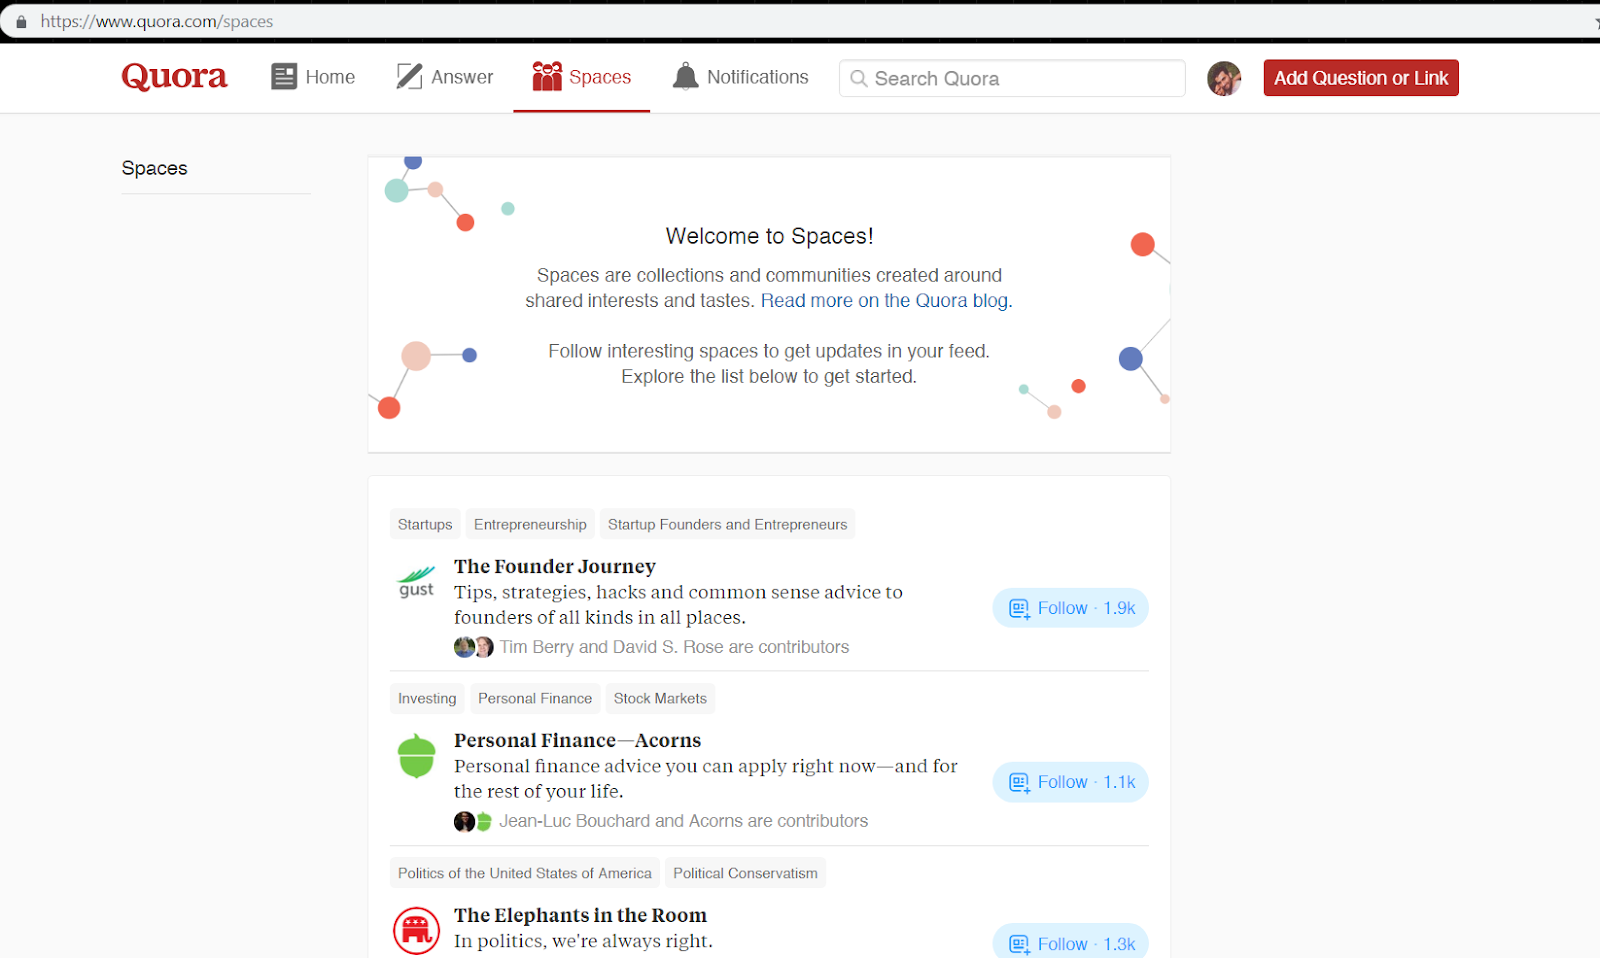 Best practices on using Quora marketing - join relevant Spaces